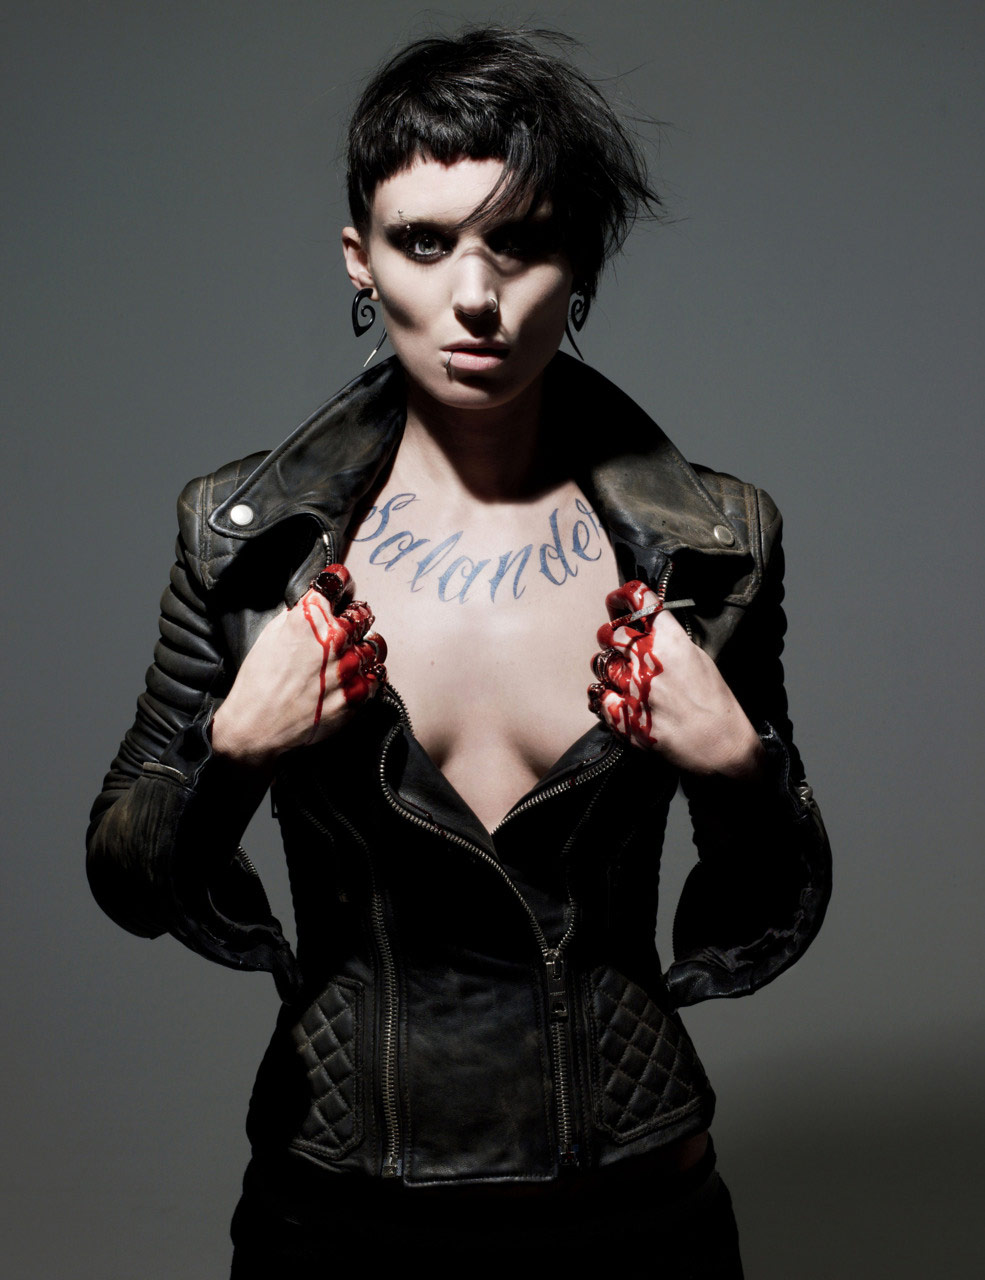 W magazine cover photo of Rooney Mara s Lisbeth Salander without text